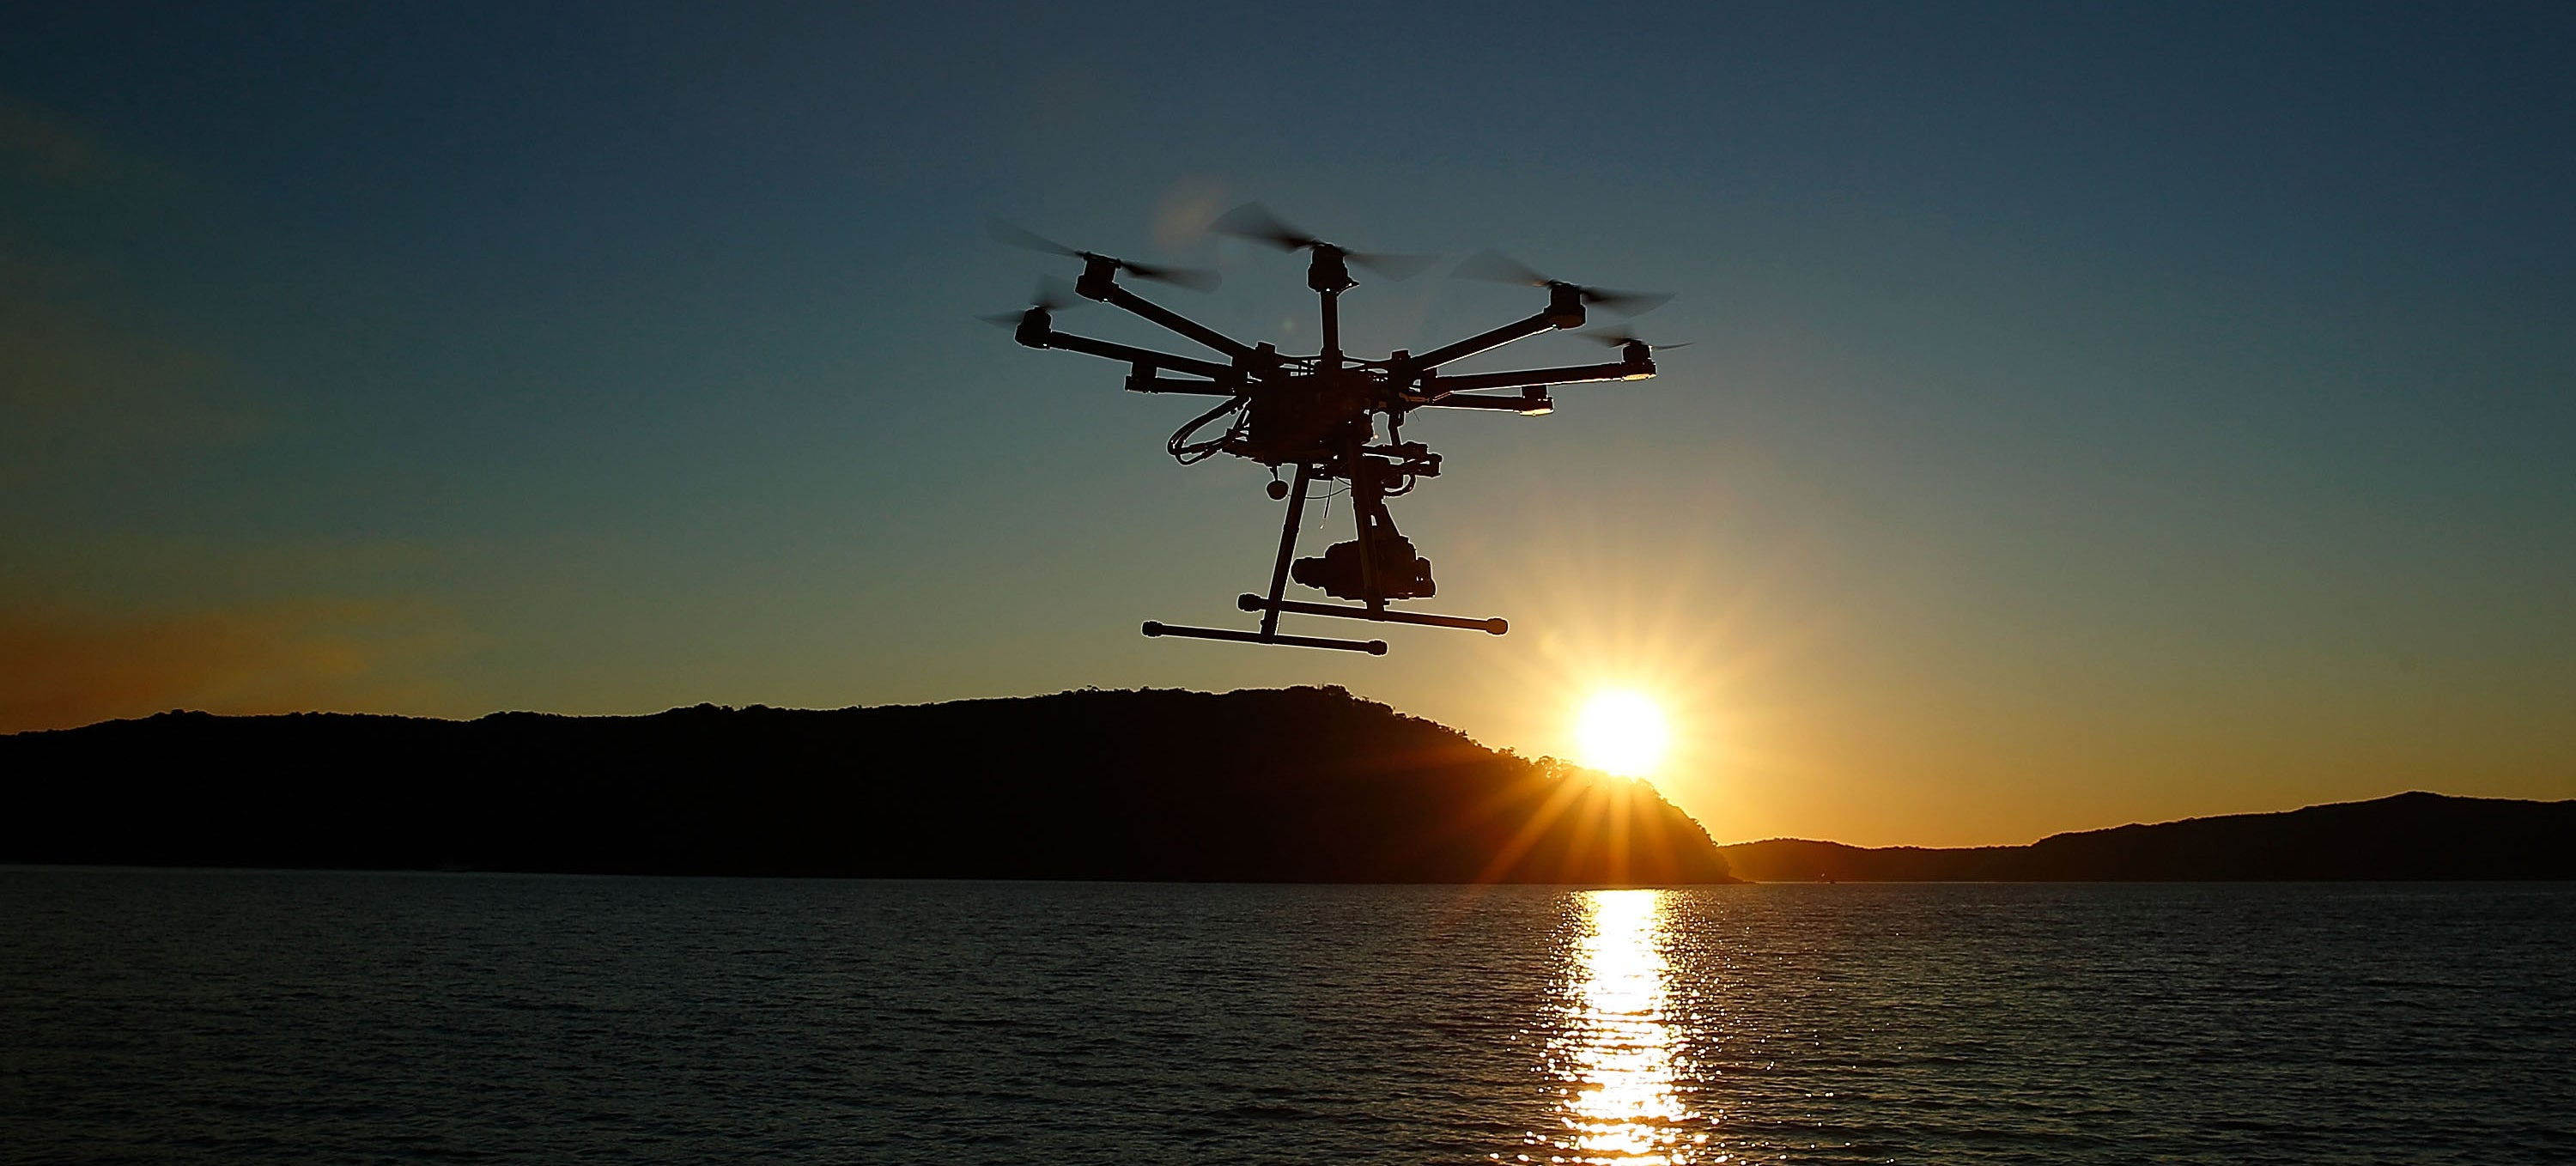 US Government Admits Drone Rules Won't Be Ready Until At Least 2017